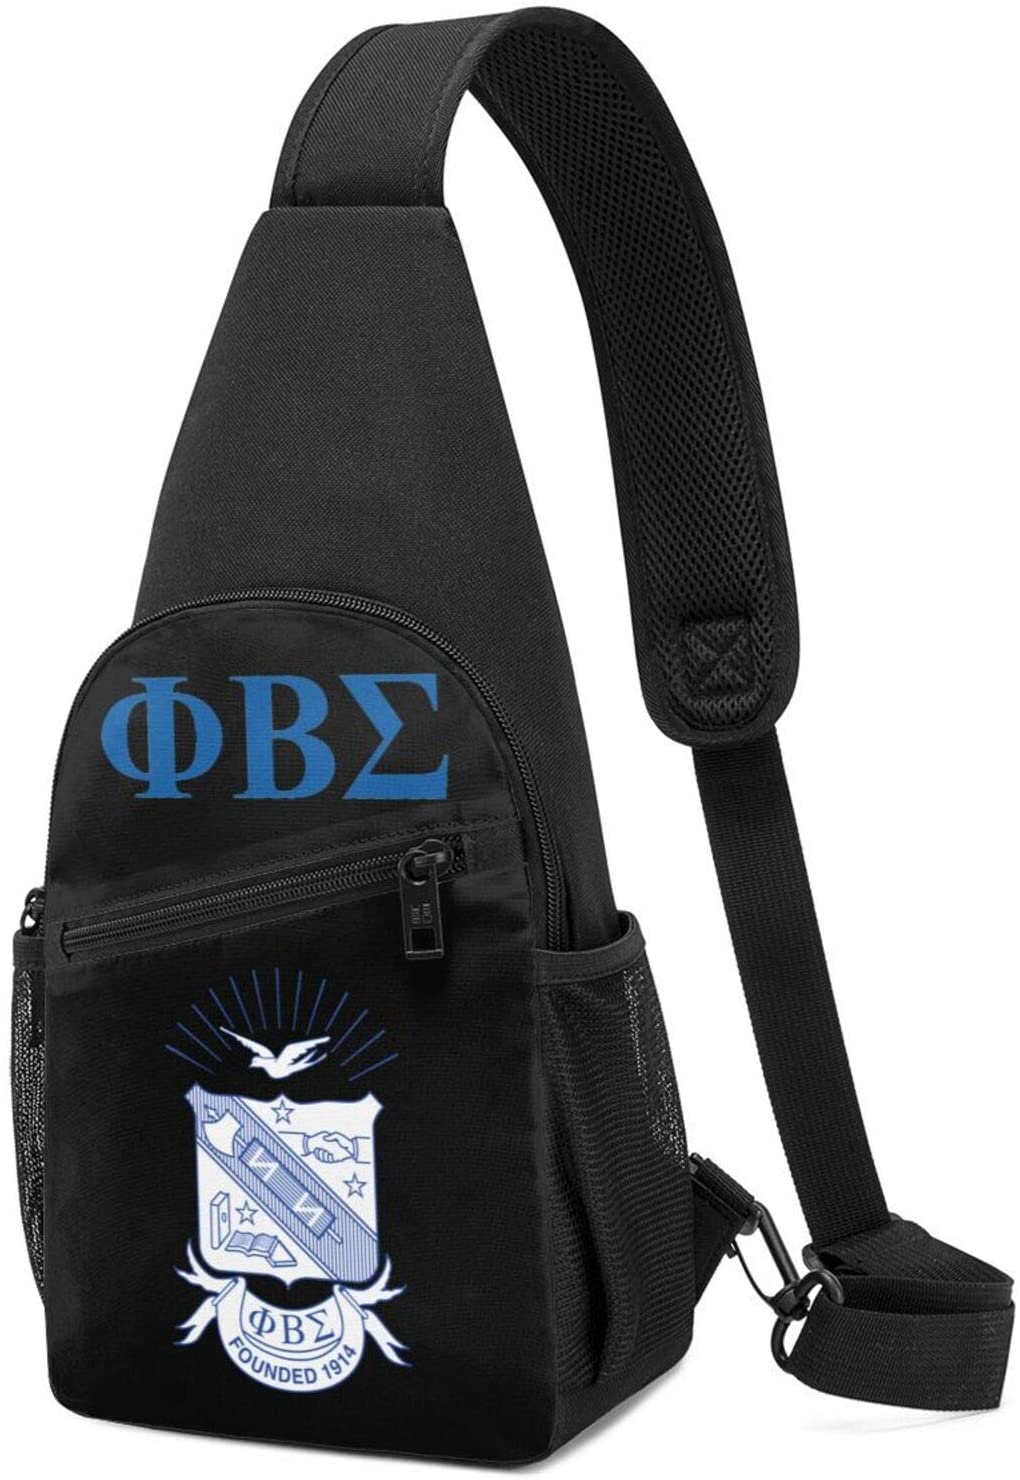 Yearzimn Phi Beta Sigma Men's and Women's Shoulder Bags, Chest Bag, Multi-Purpose Crossbody Military Sports Bag, Hiking Backpack